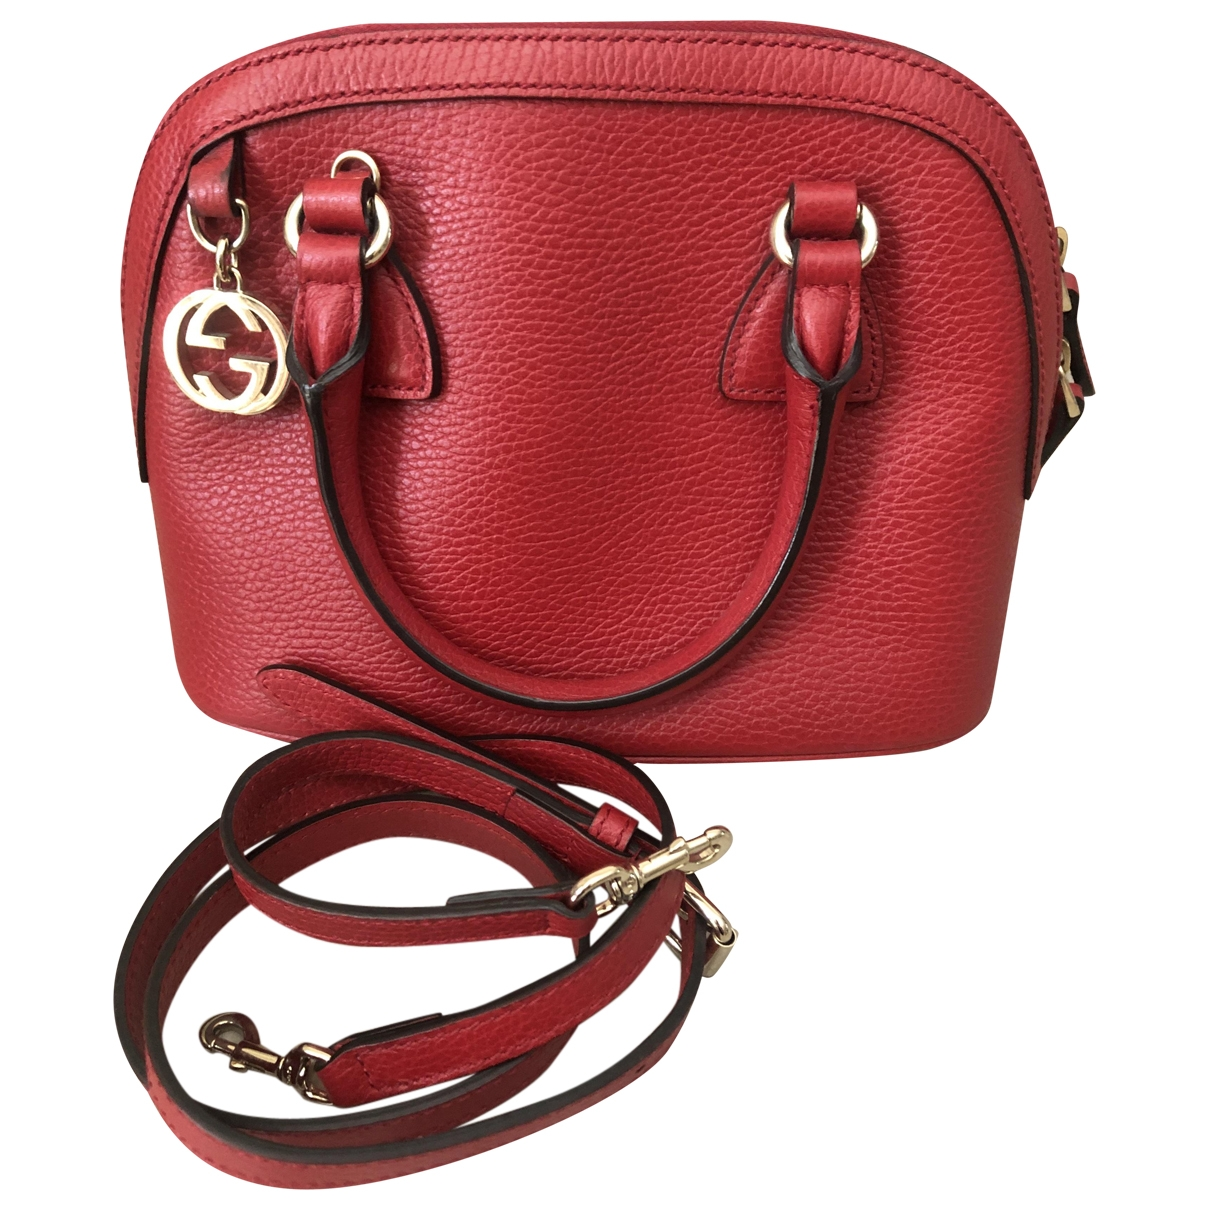 Gucci Dome Handtasche in  Rot Leder